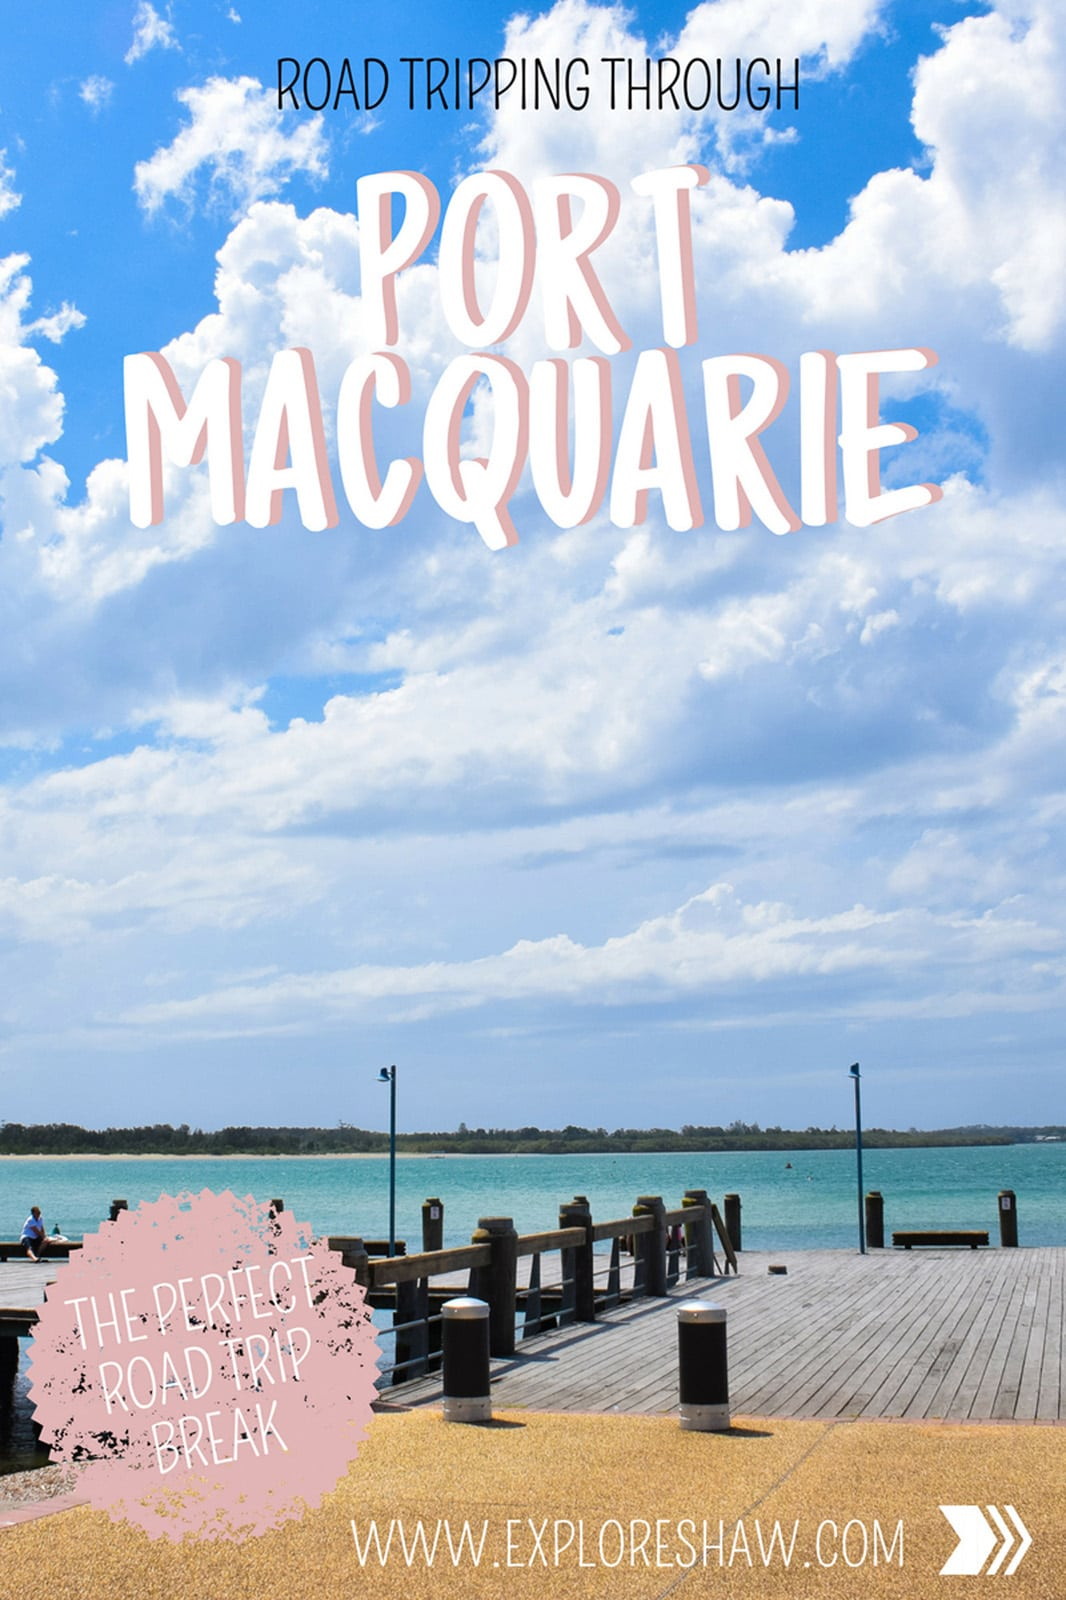 Port Macquarie is the perfect place to stop on a road trip thought the Central Coast of New South Wales. Here's a guide to everything you need to do, see and eat in Port Macquarie.